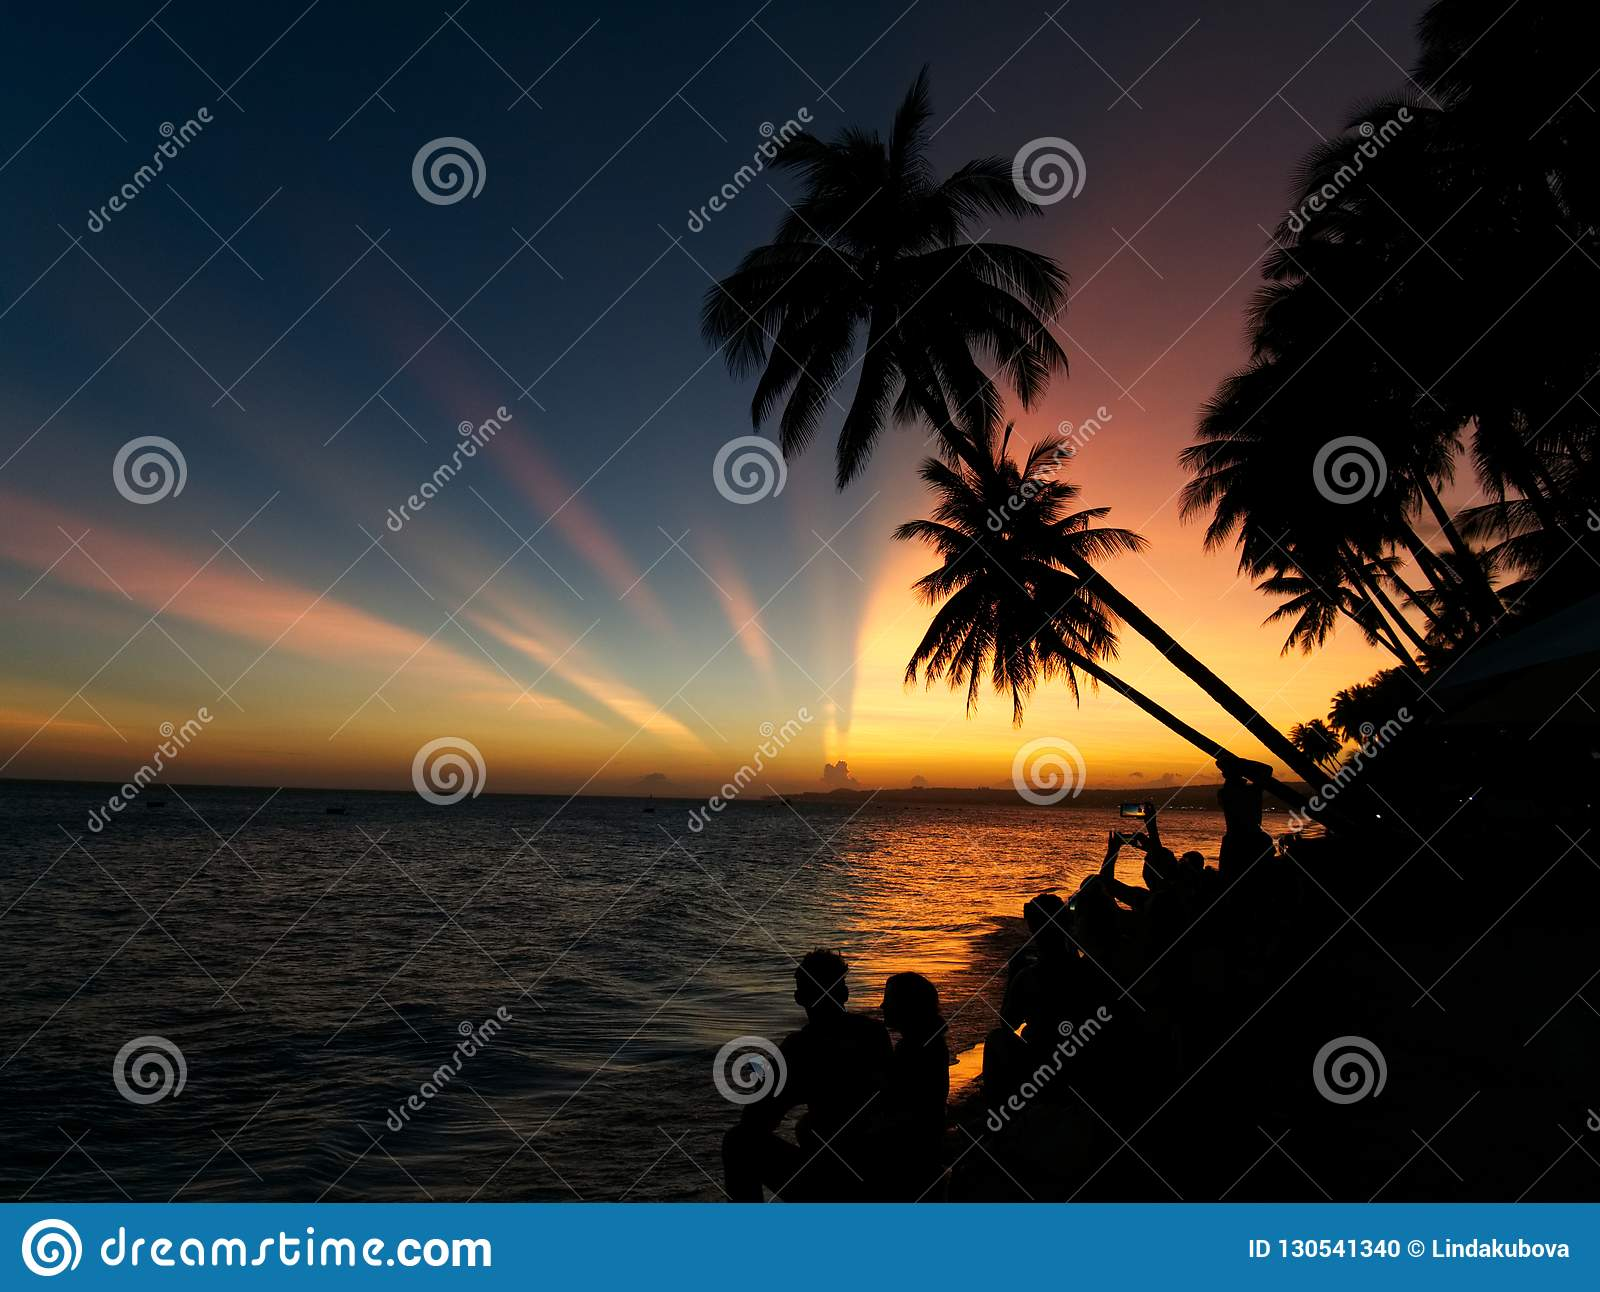 A group of people watching the sunset with palm trees